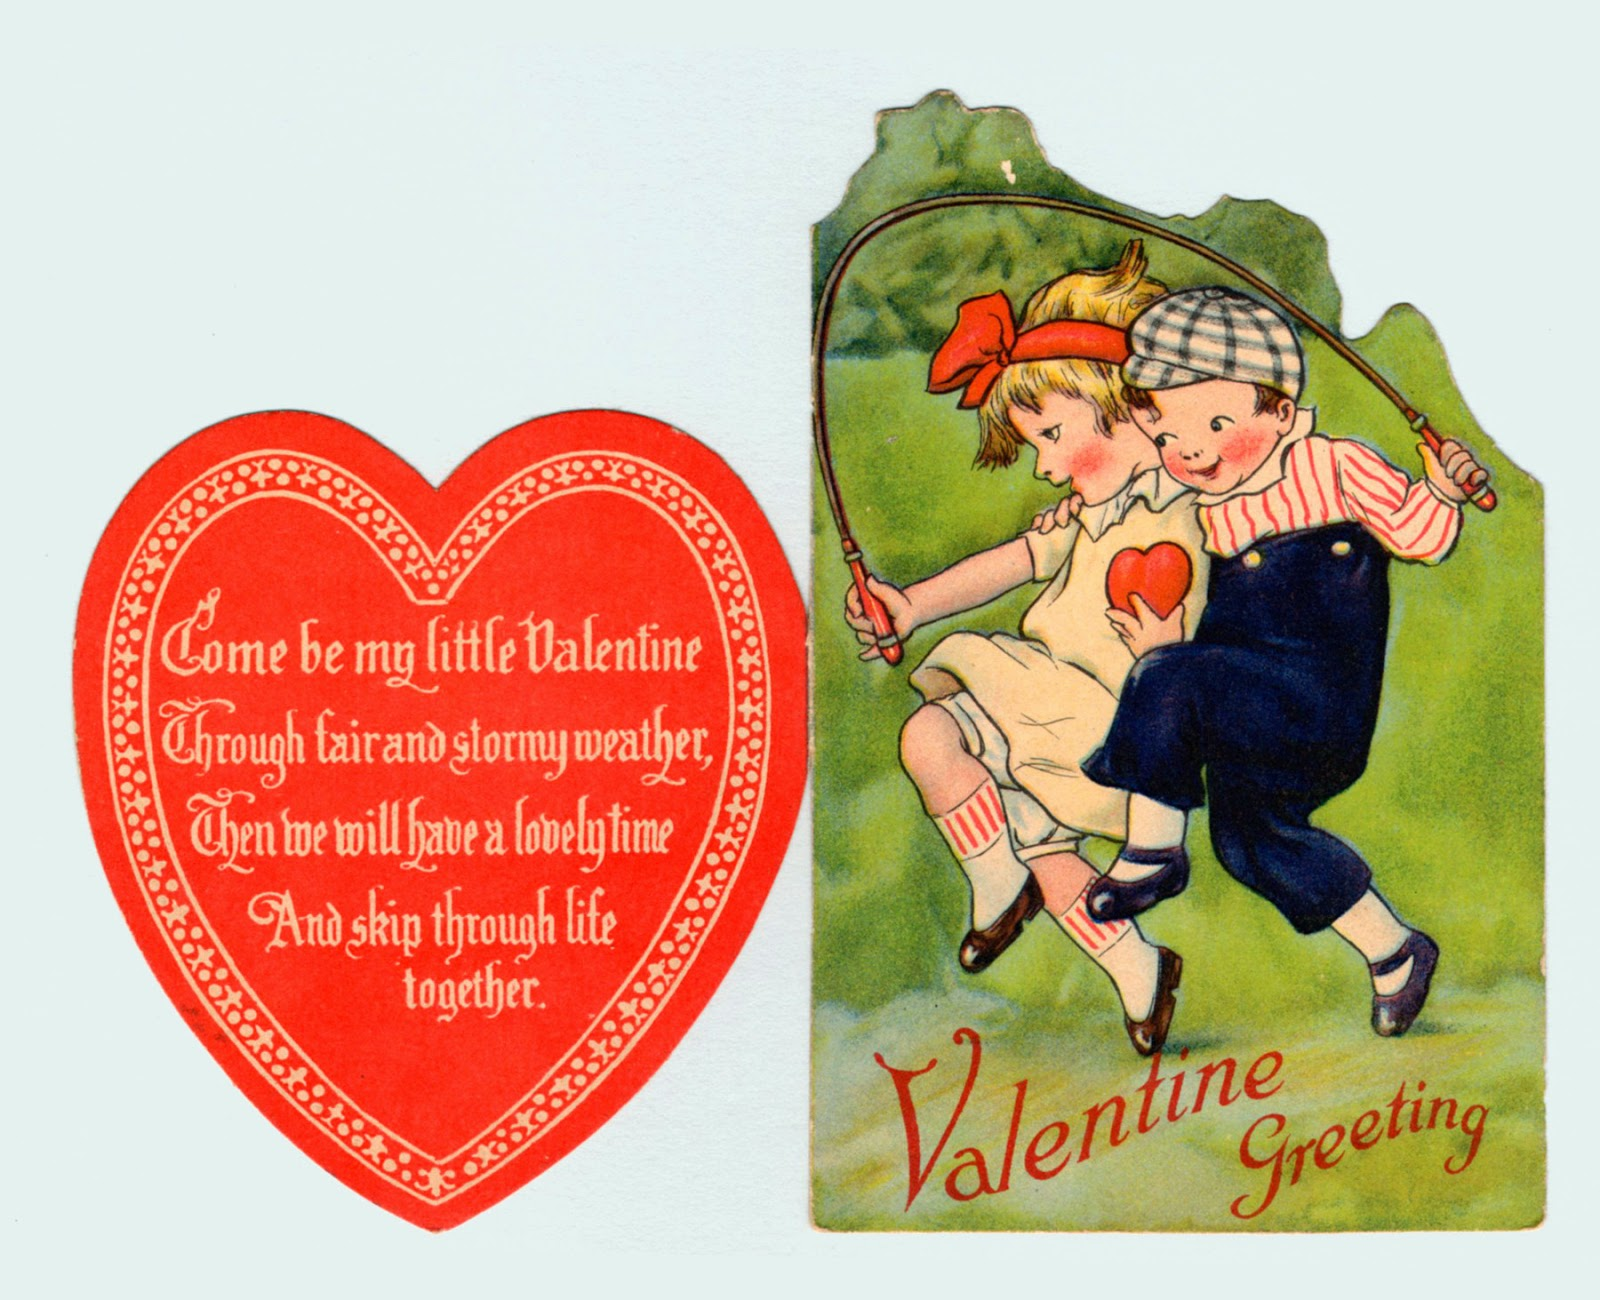 Come Be My Little Valentine Through Fair And Stormy Weather, Then We Will  Have A Lovely Time And Ship Through Life Together. Valentine Greeting.